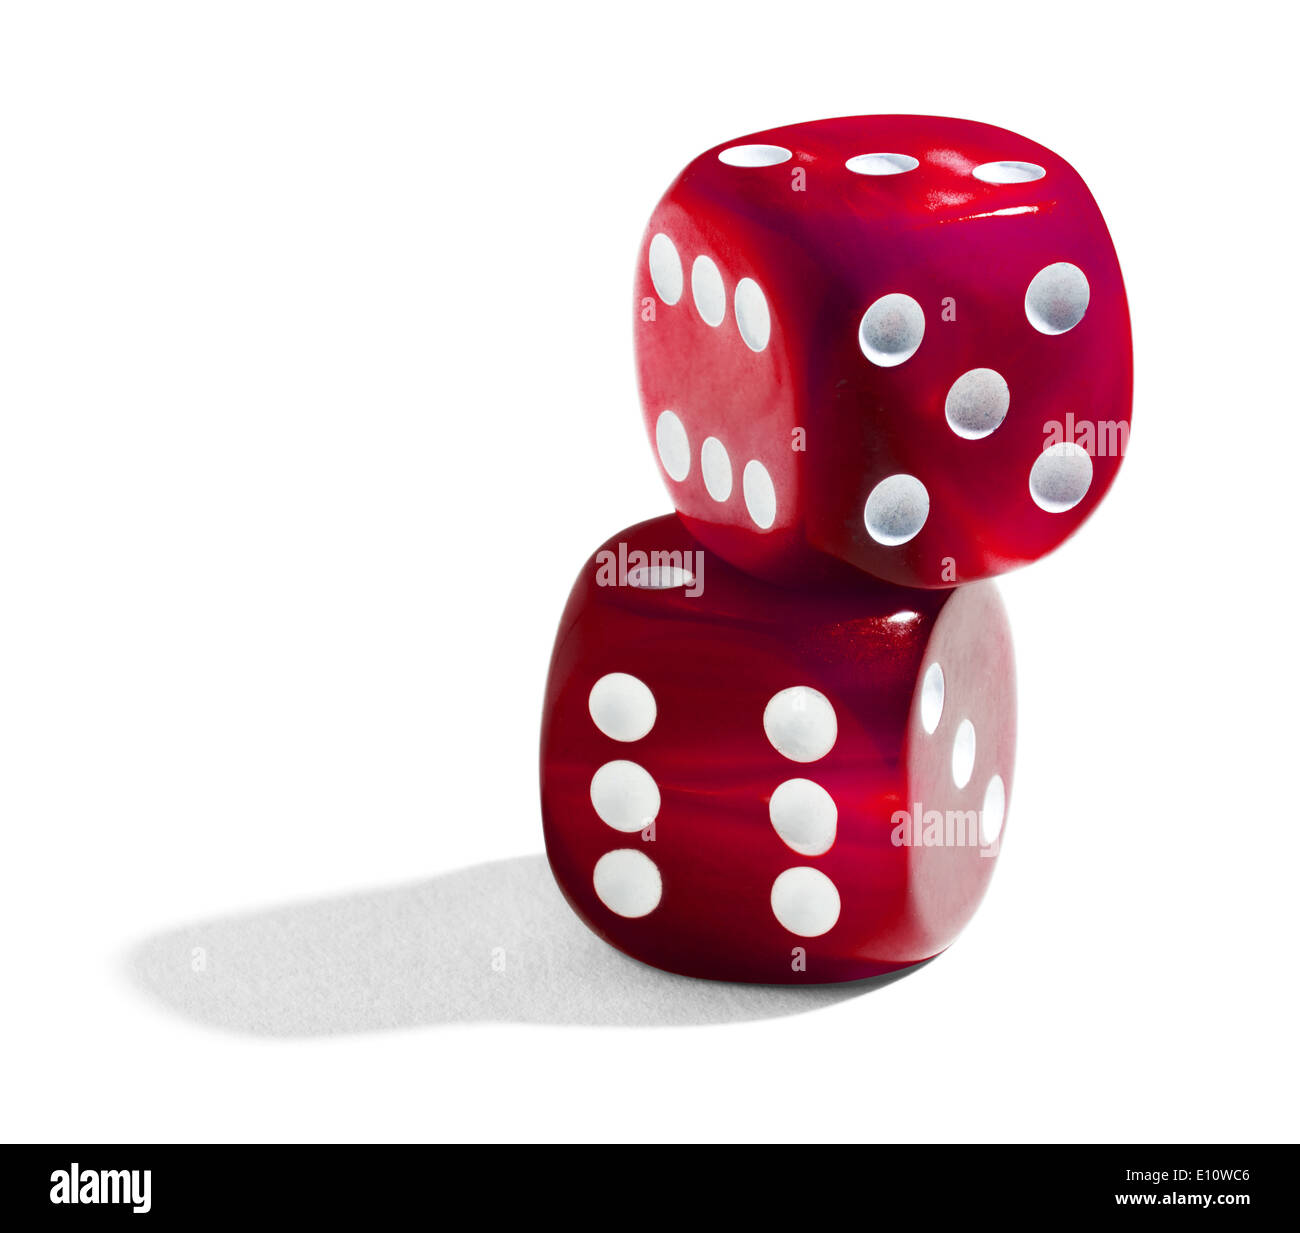 Two red stacked dice - Stock Image